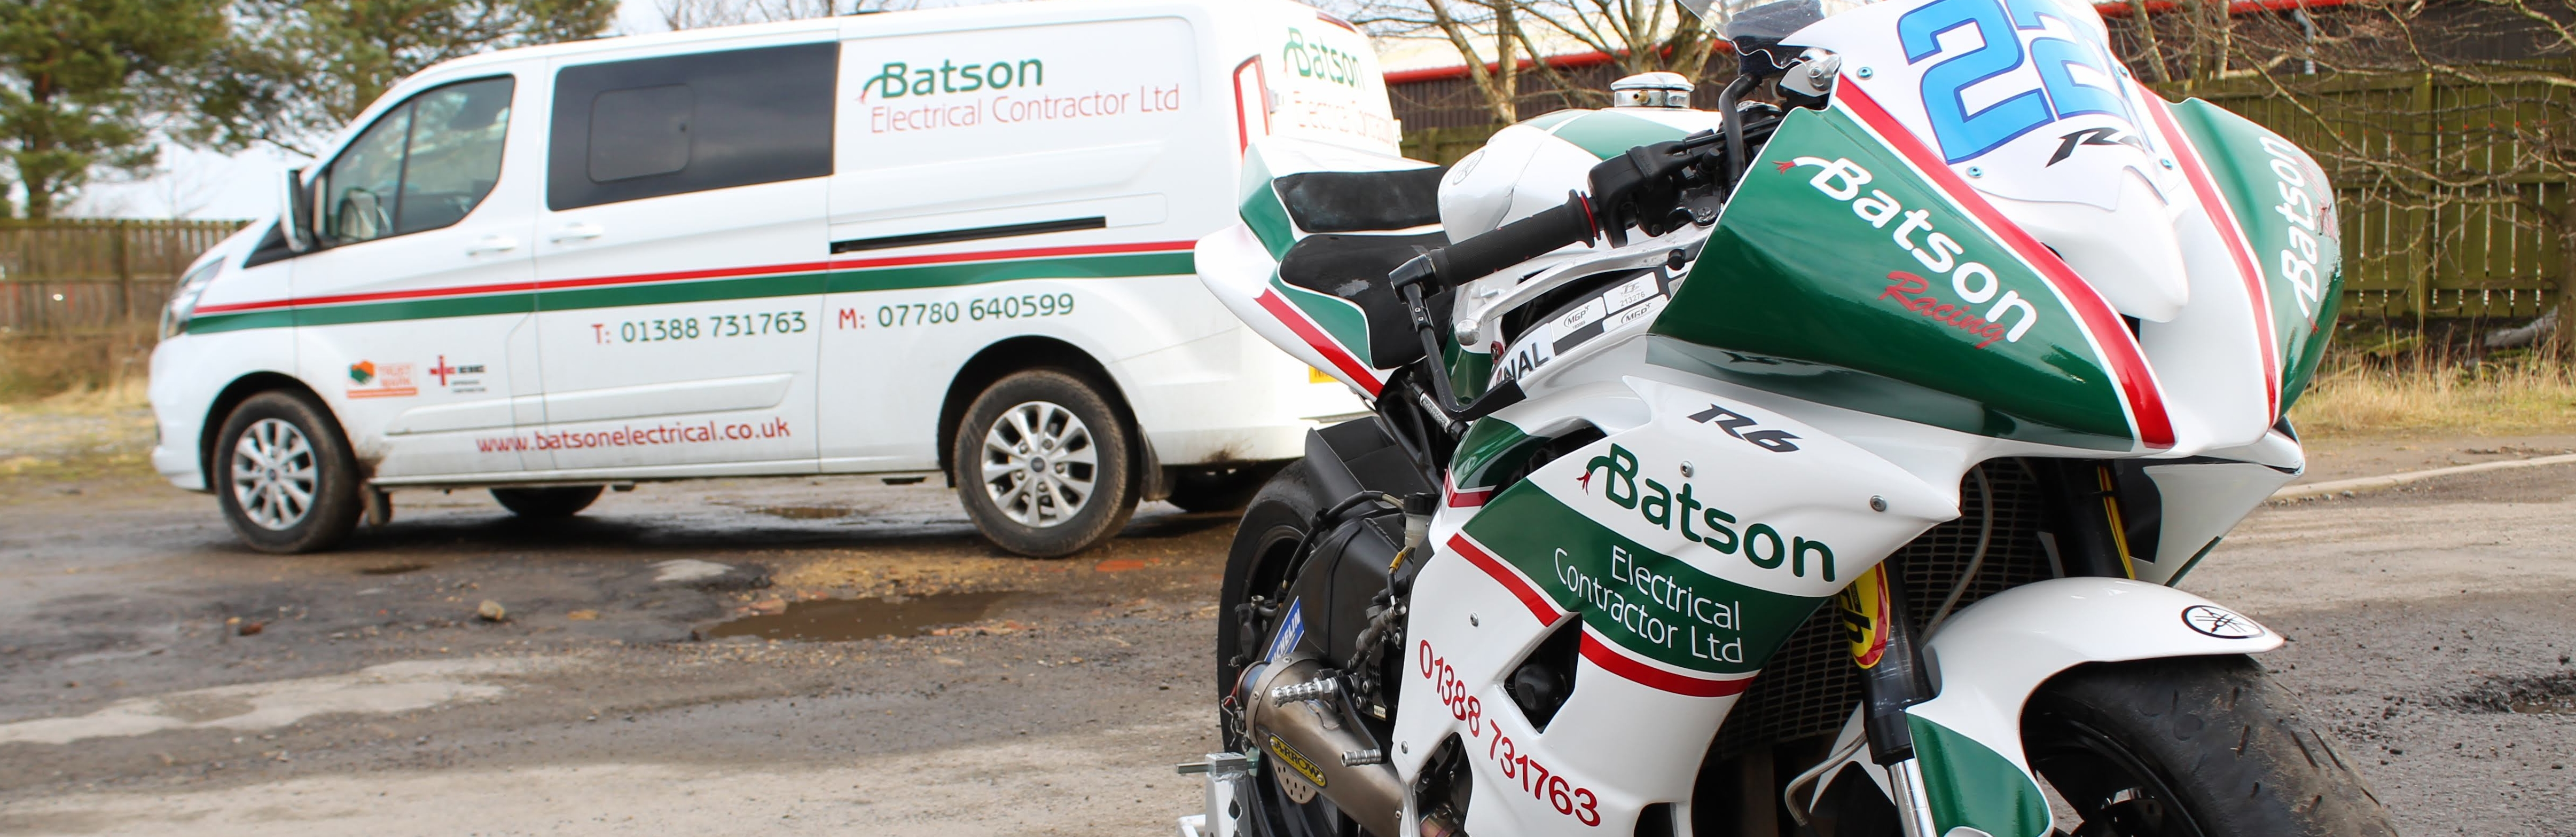 BATSON ELECTRICAL CONTRACTORS LTD